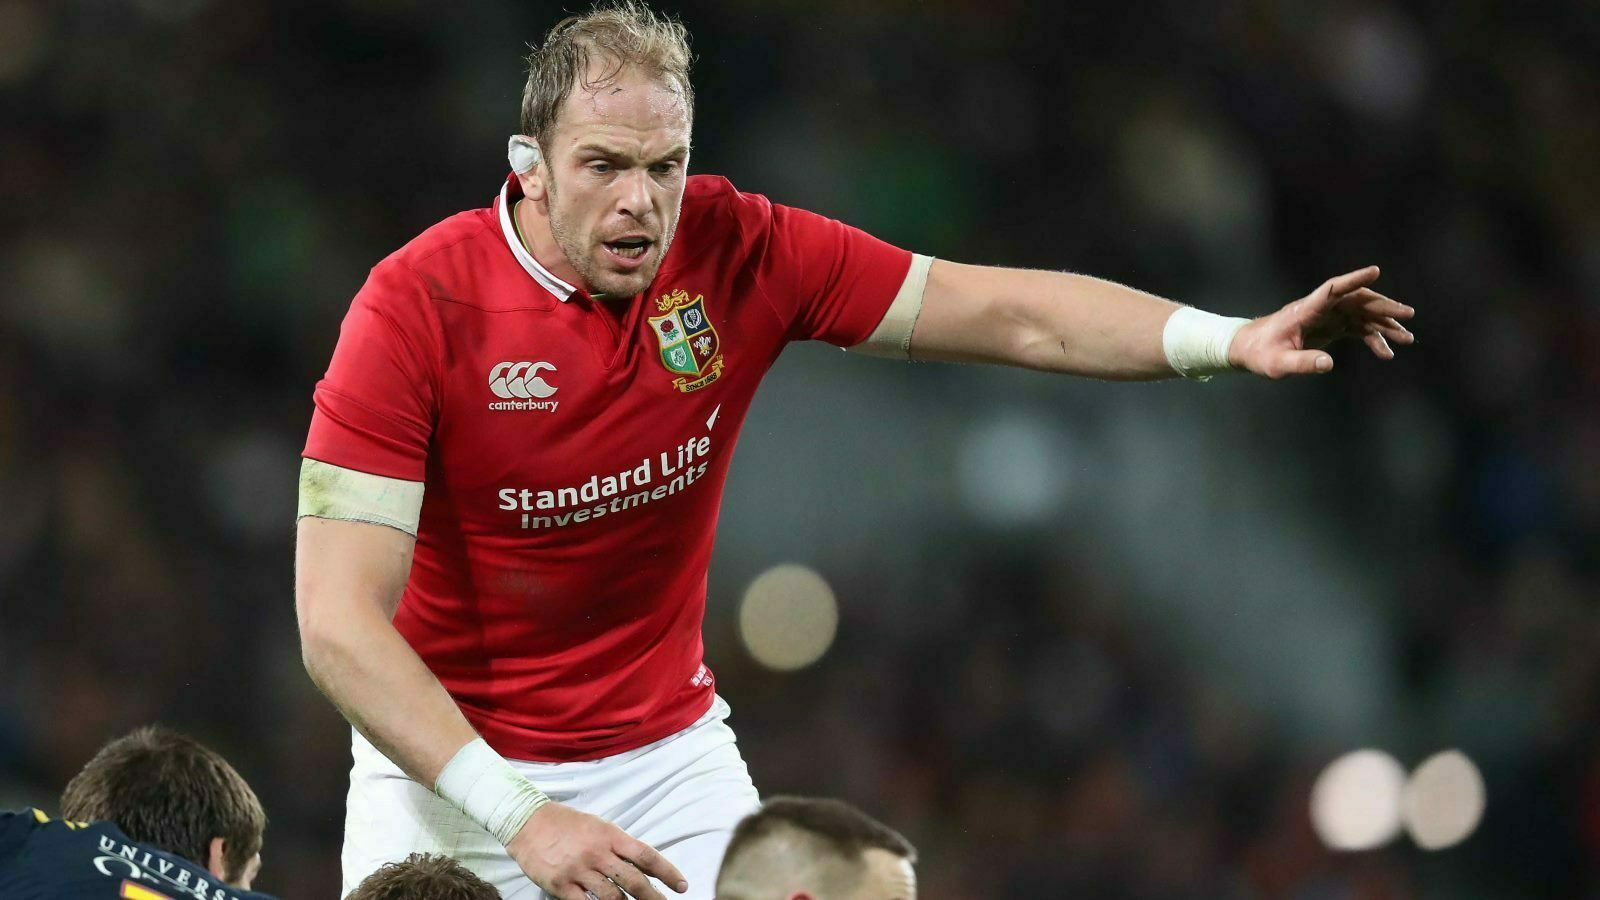 Jones urges Wales to stay focused after England win